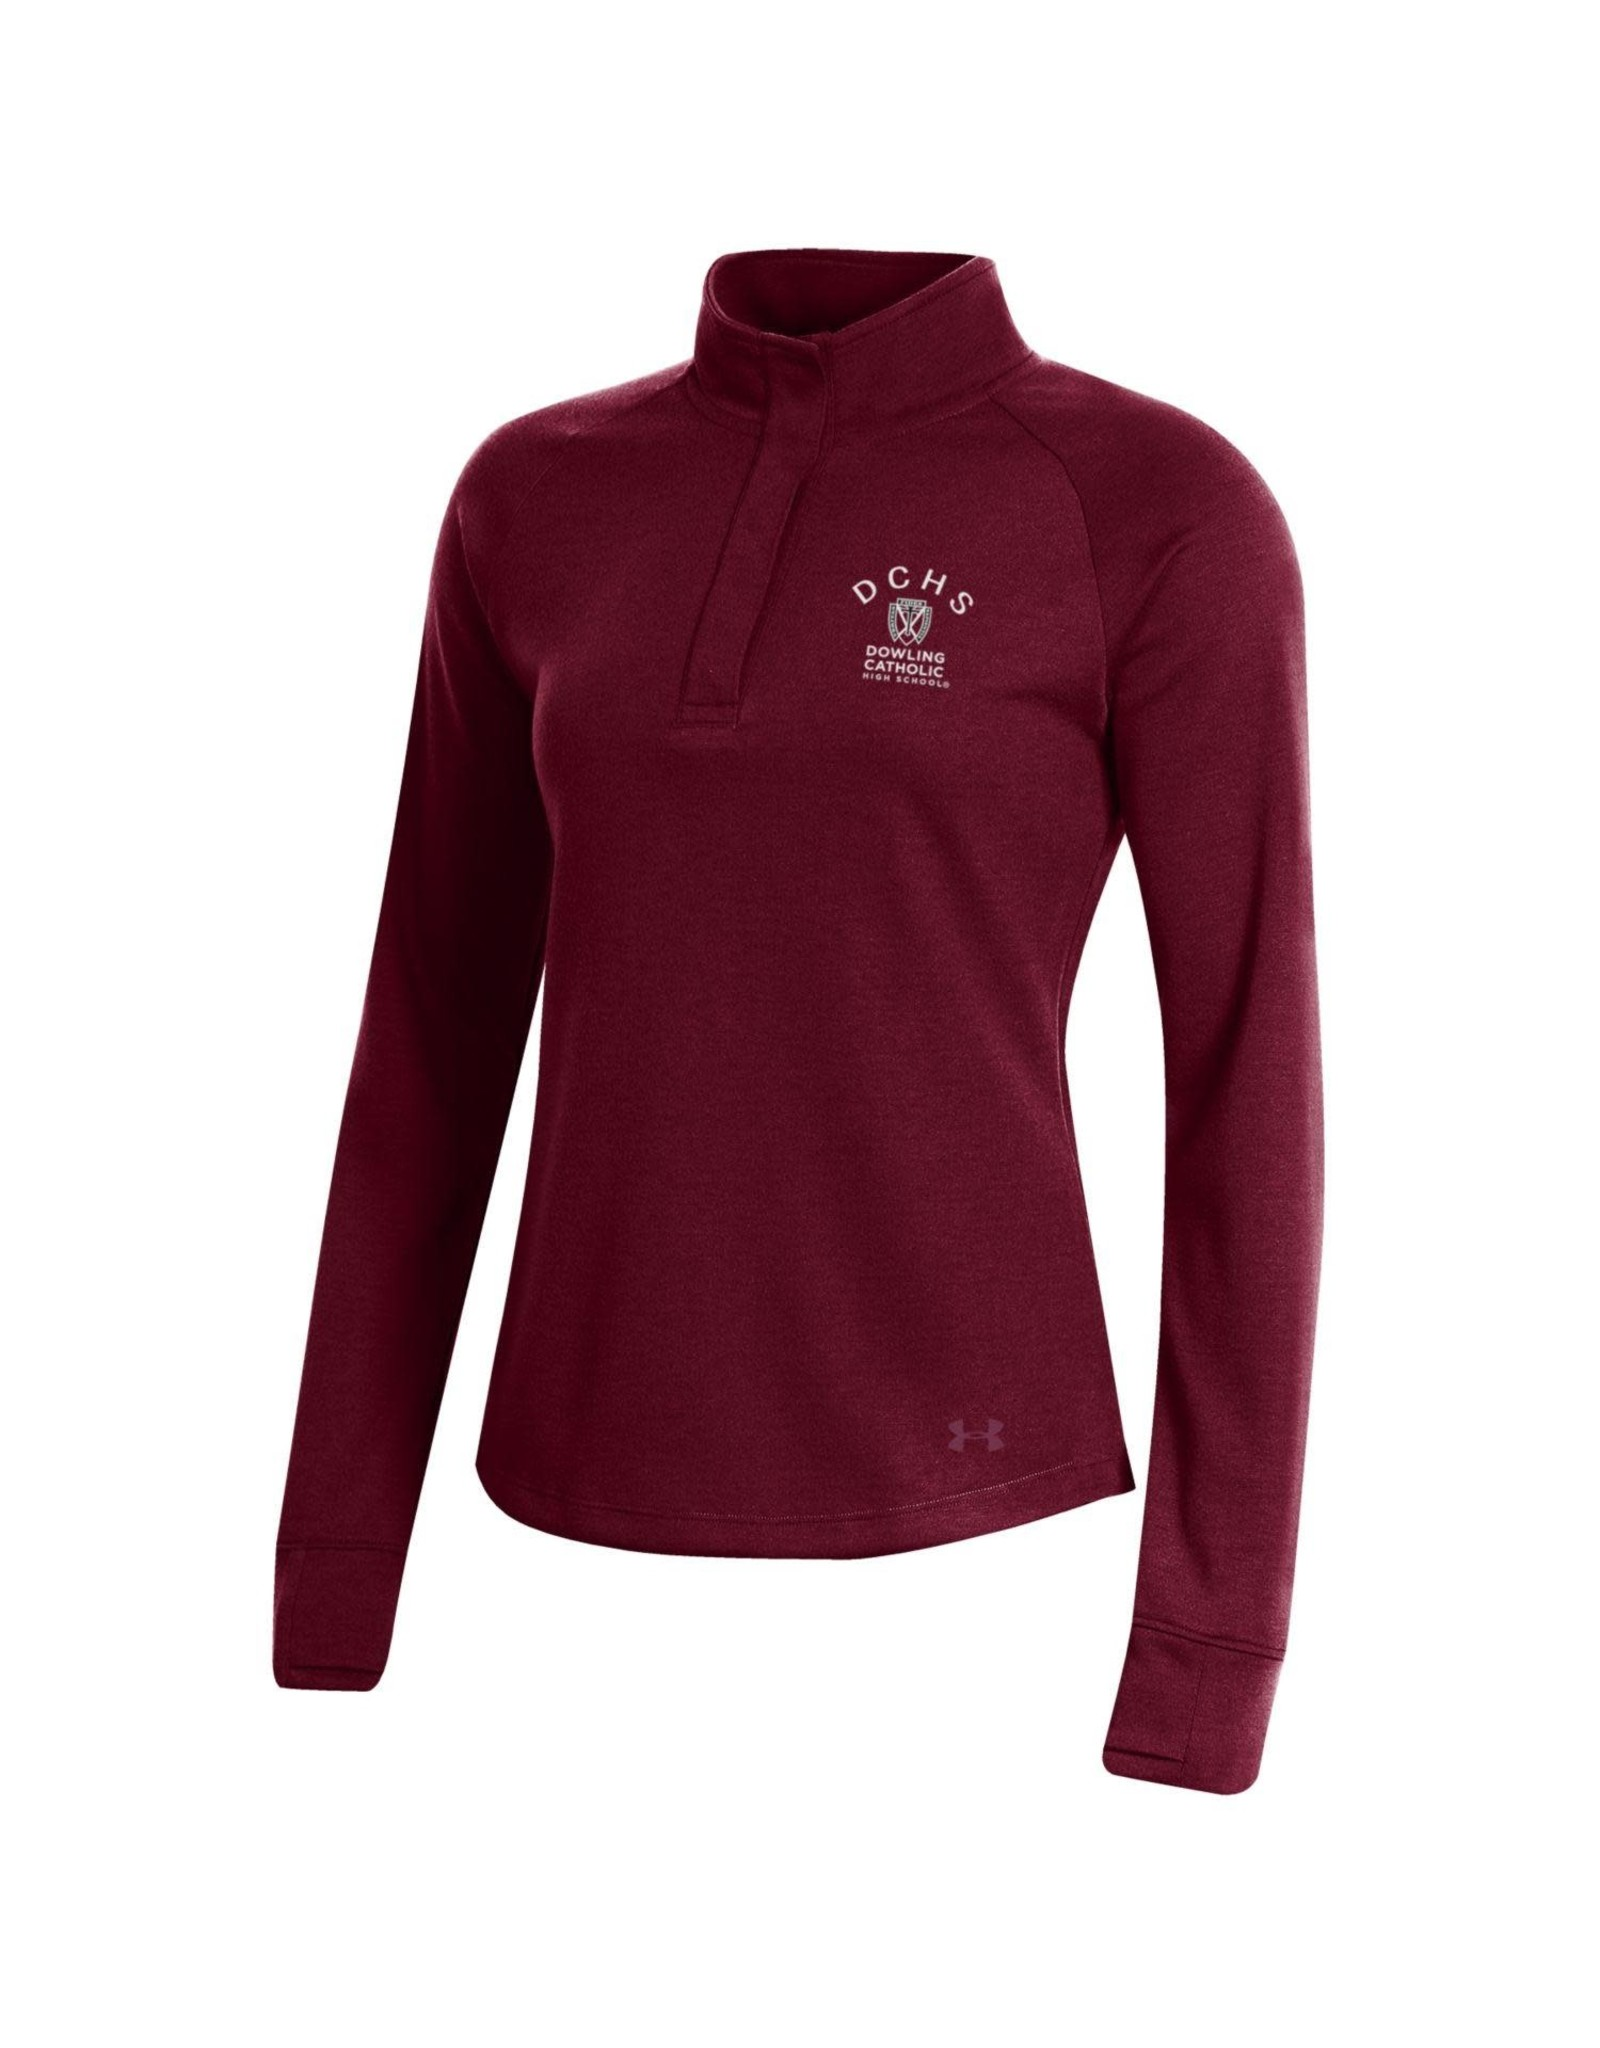 Under Armour Under Armour Women's Knit Jersey 1/4 Snap